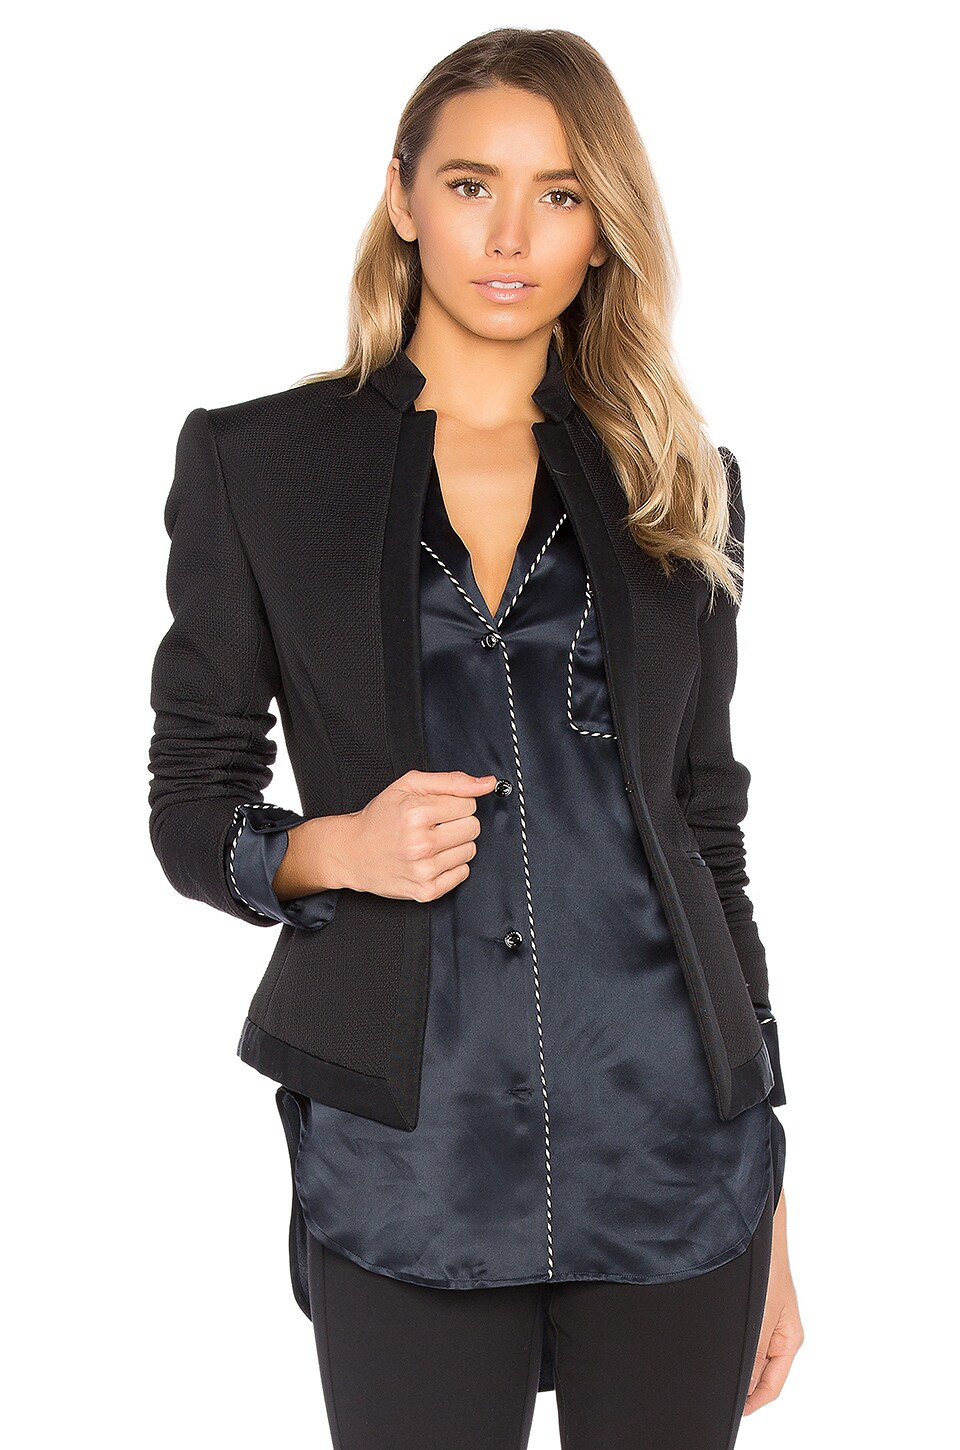 Waverly Blazer by Rag & Bone